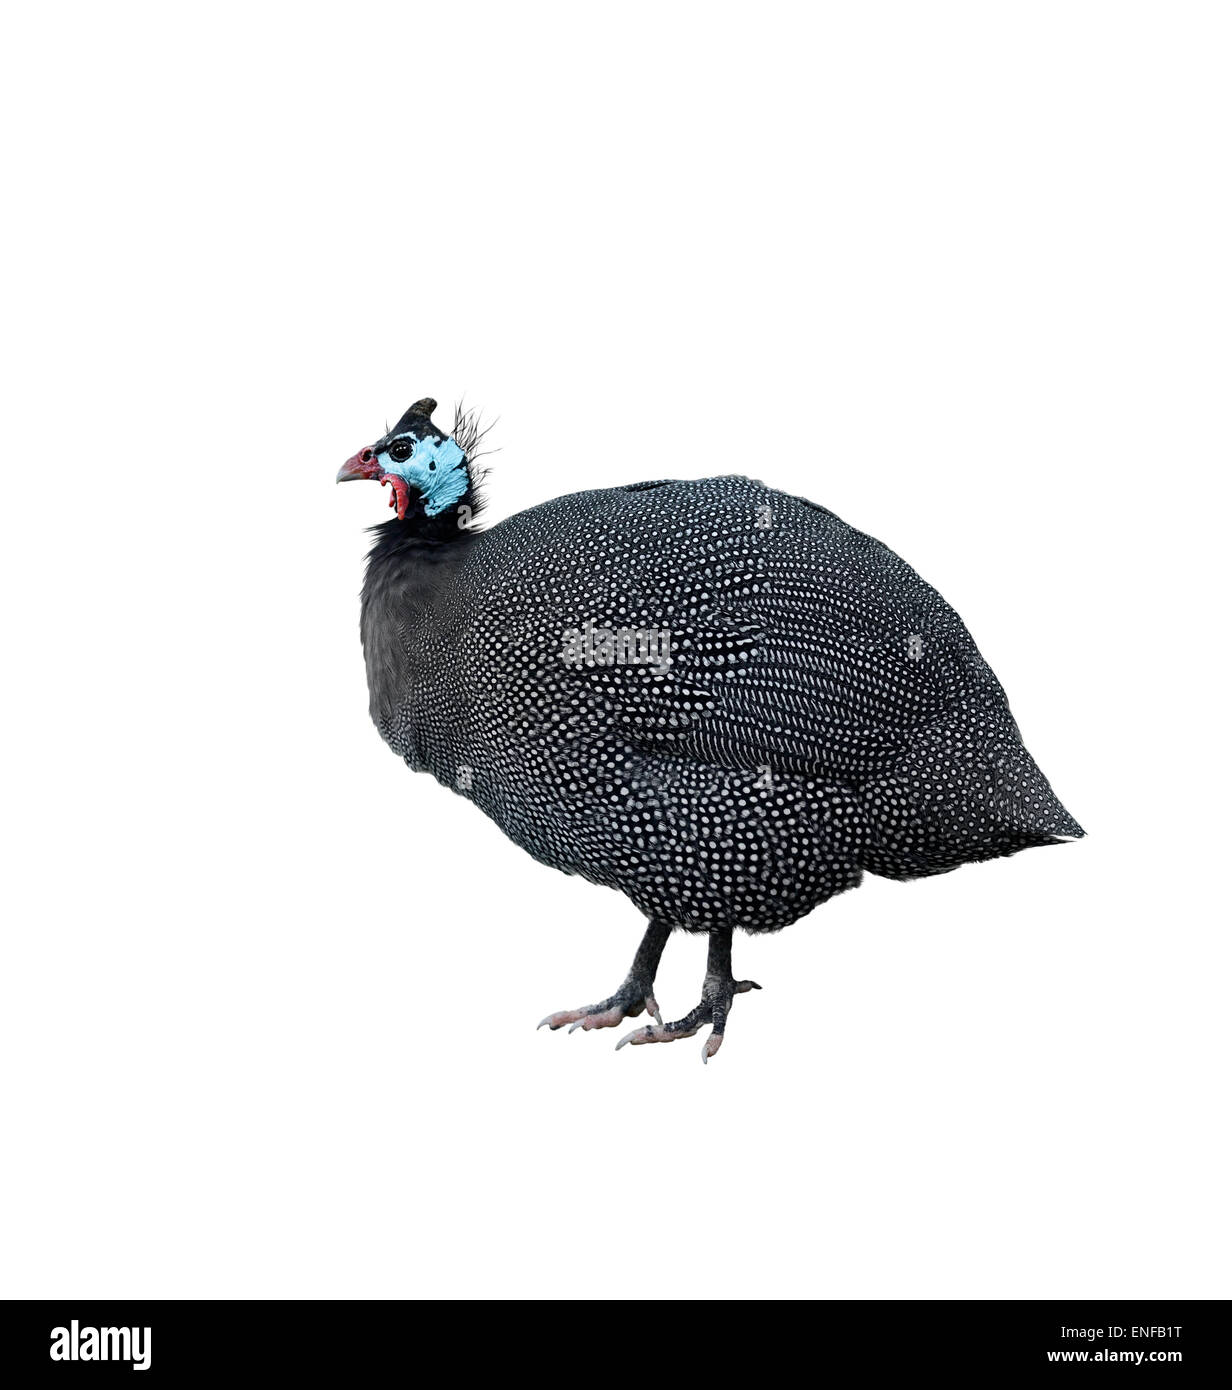 Helmeted Guinea Fowl Isolated On White Background - Stock Image